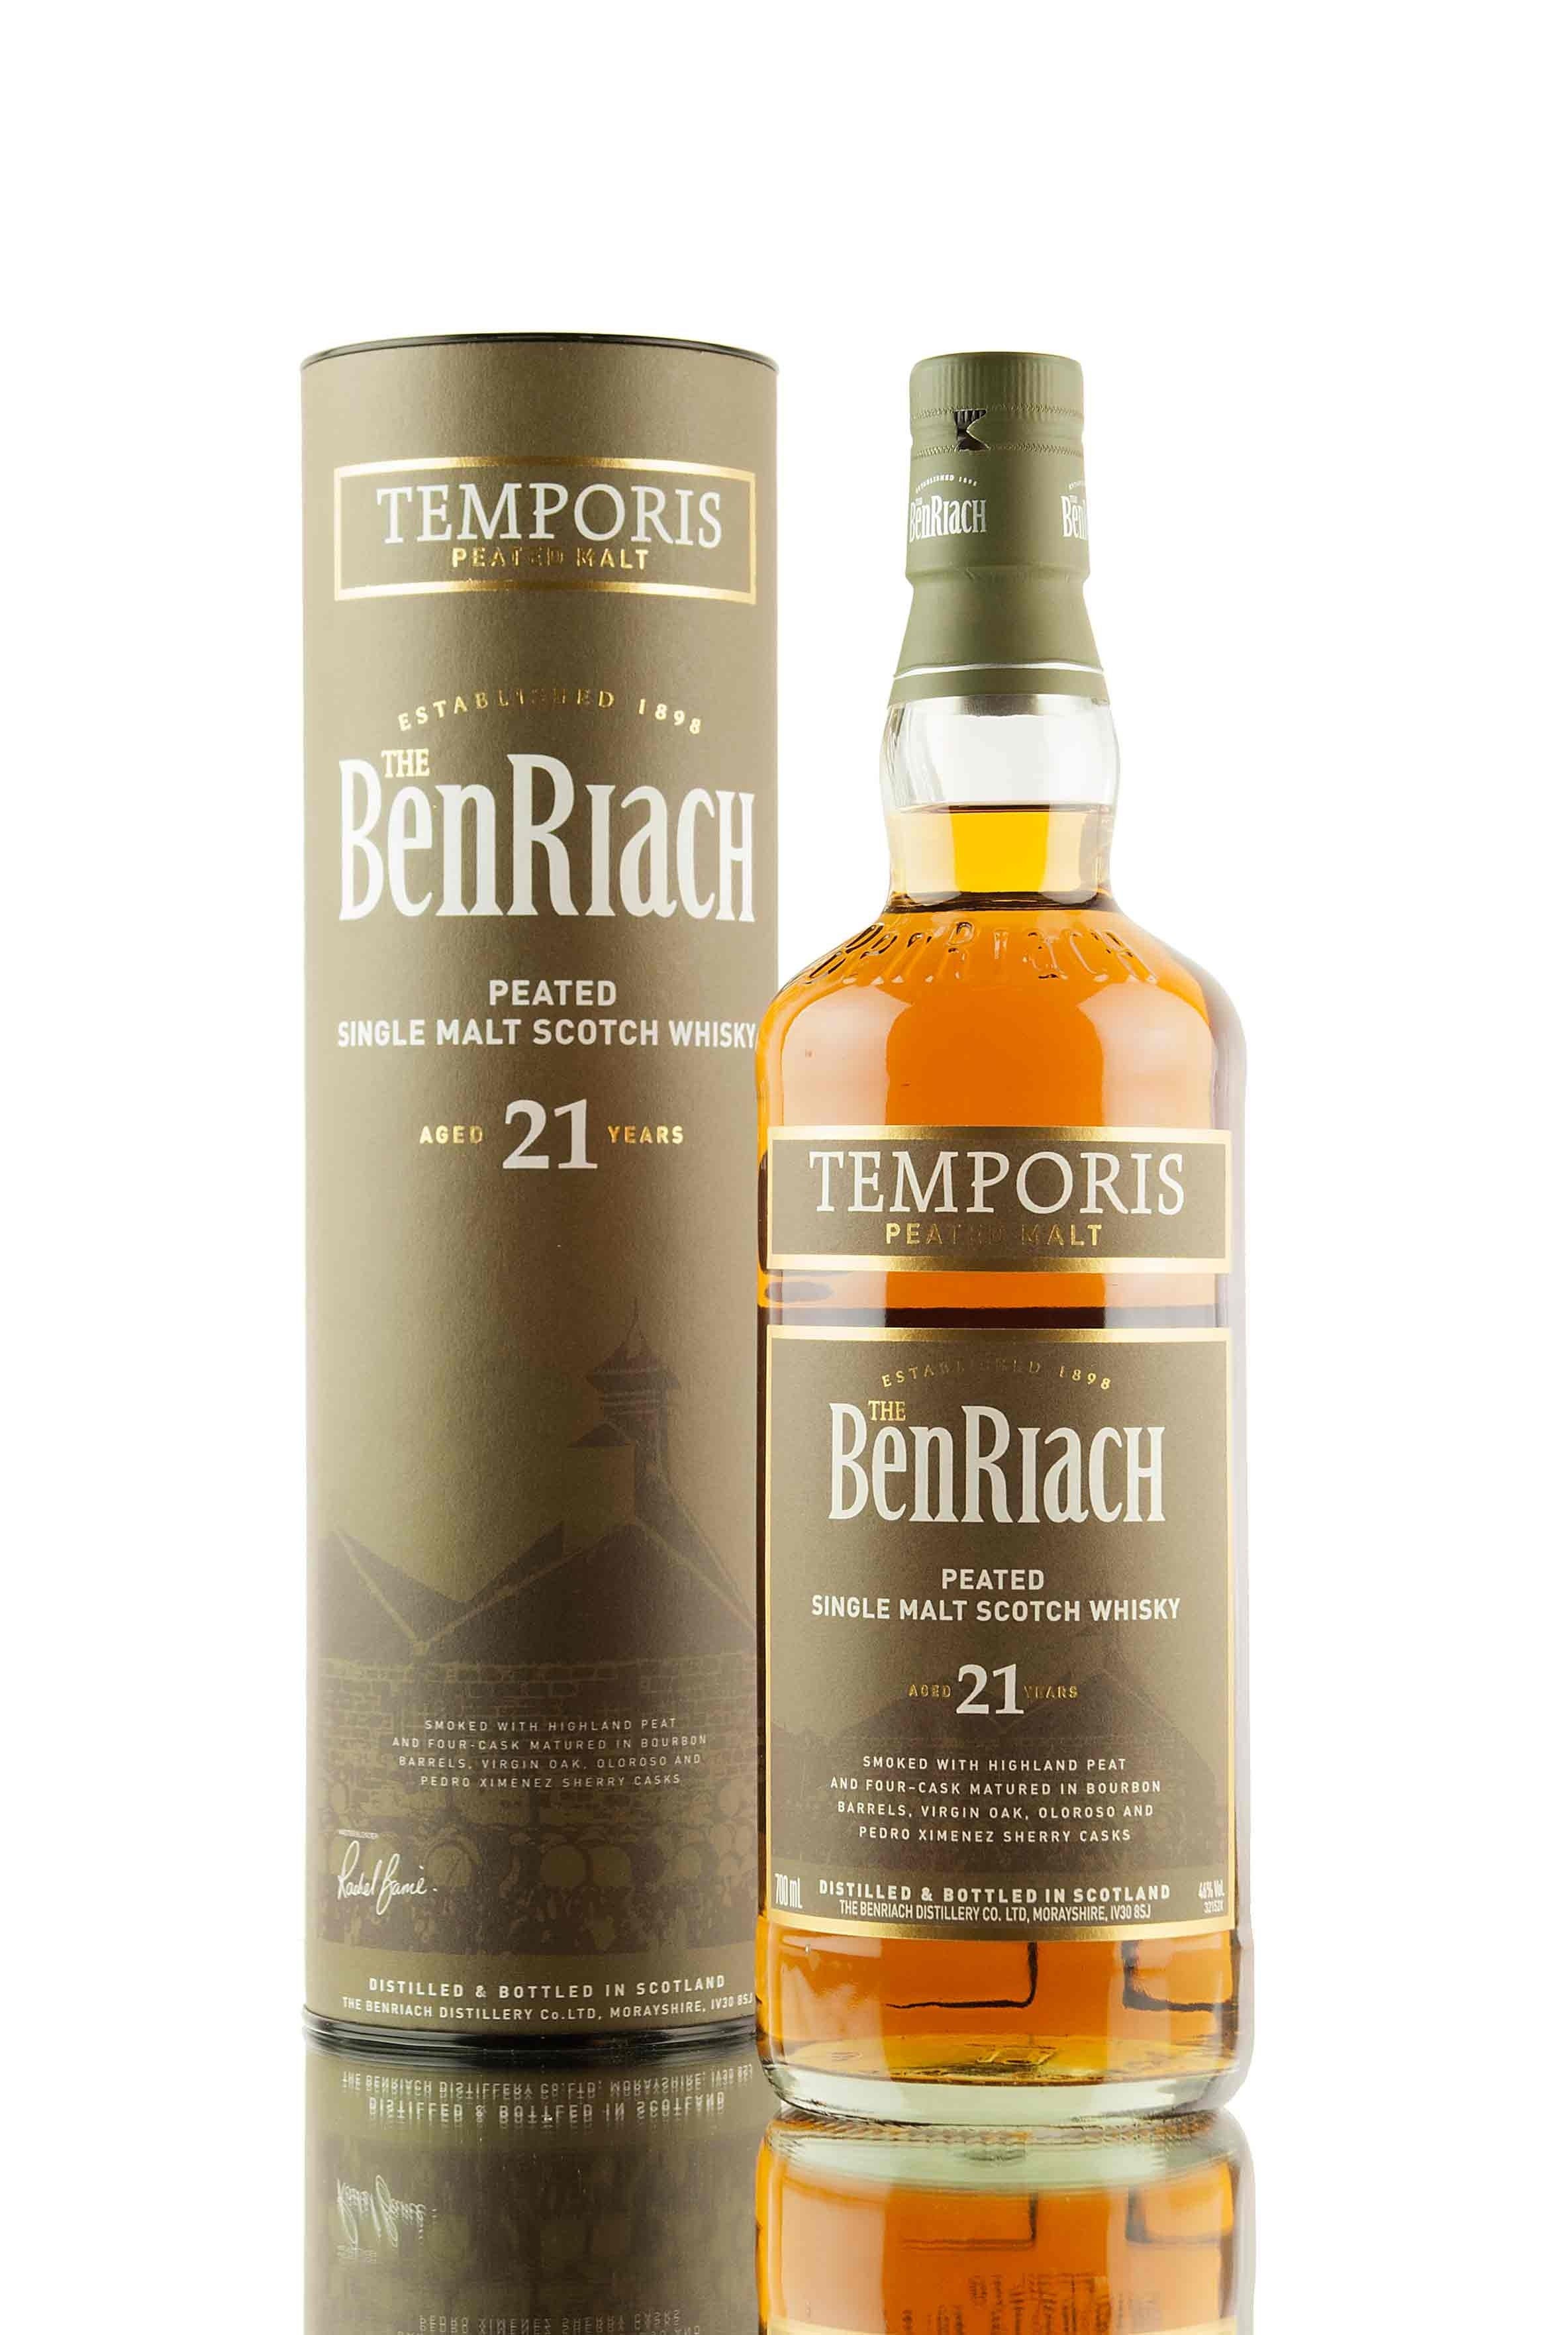 BenRiach 21 Year Old Temporis